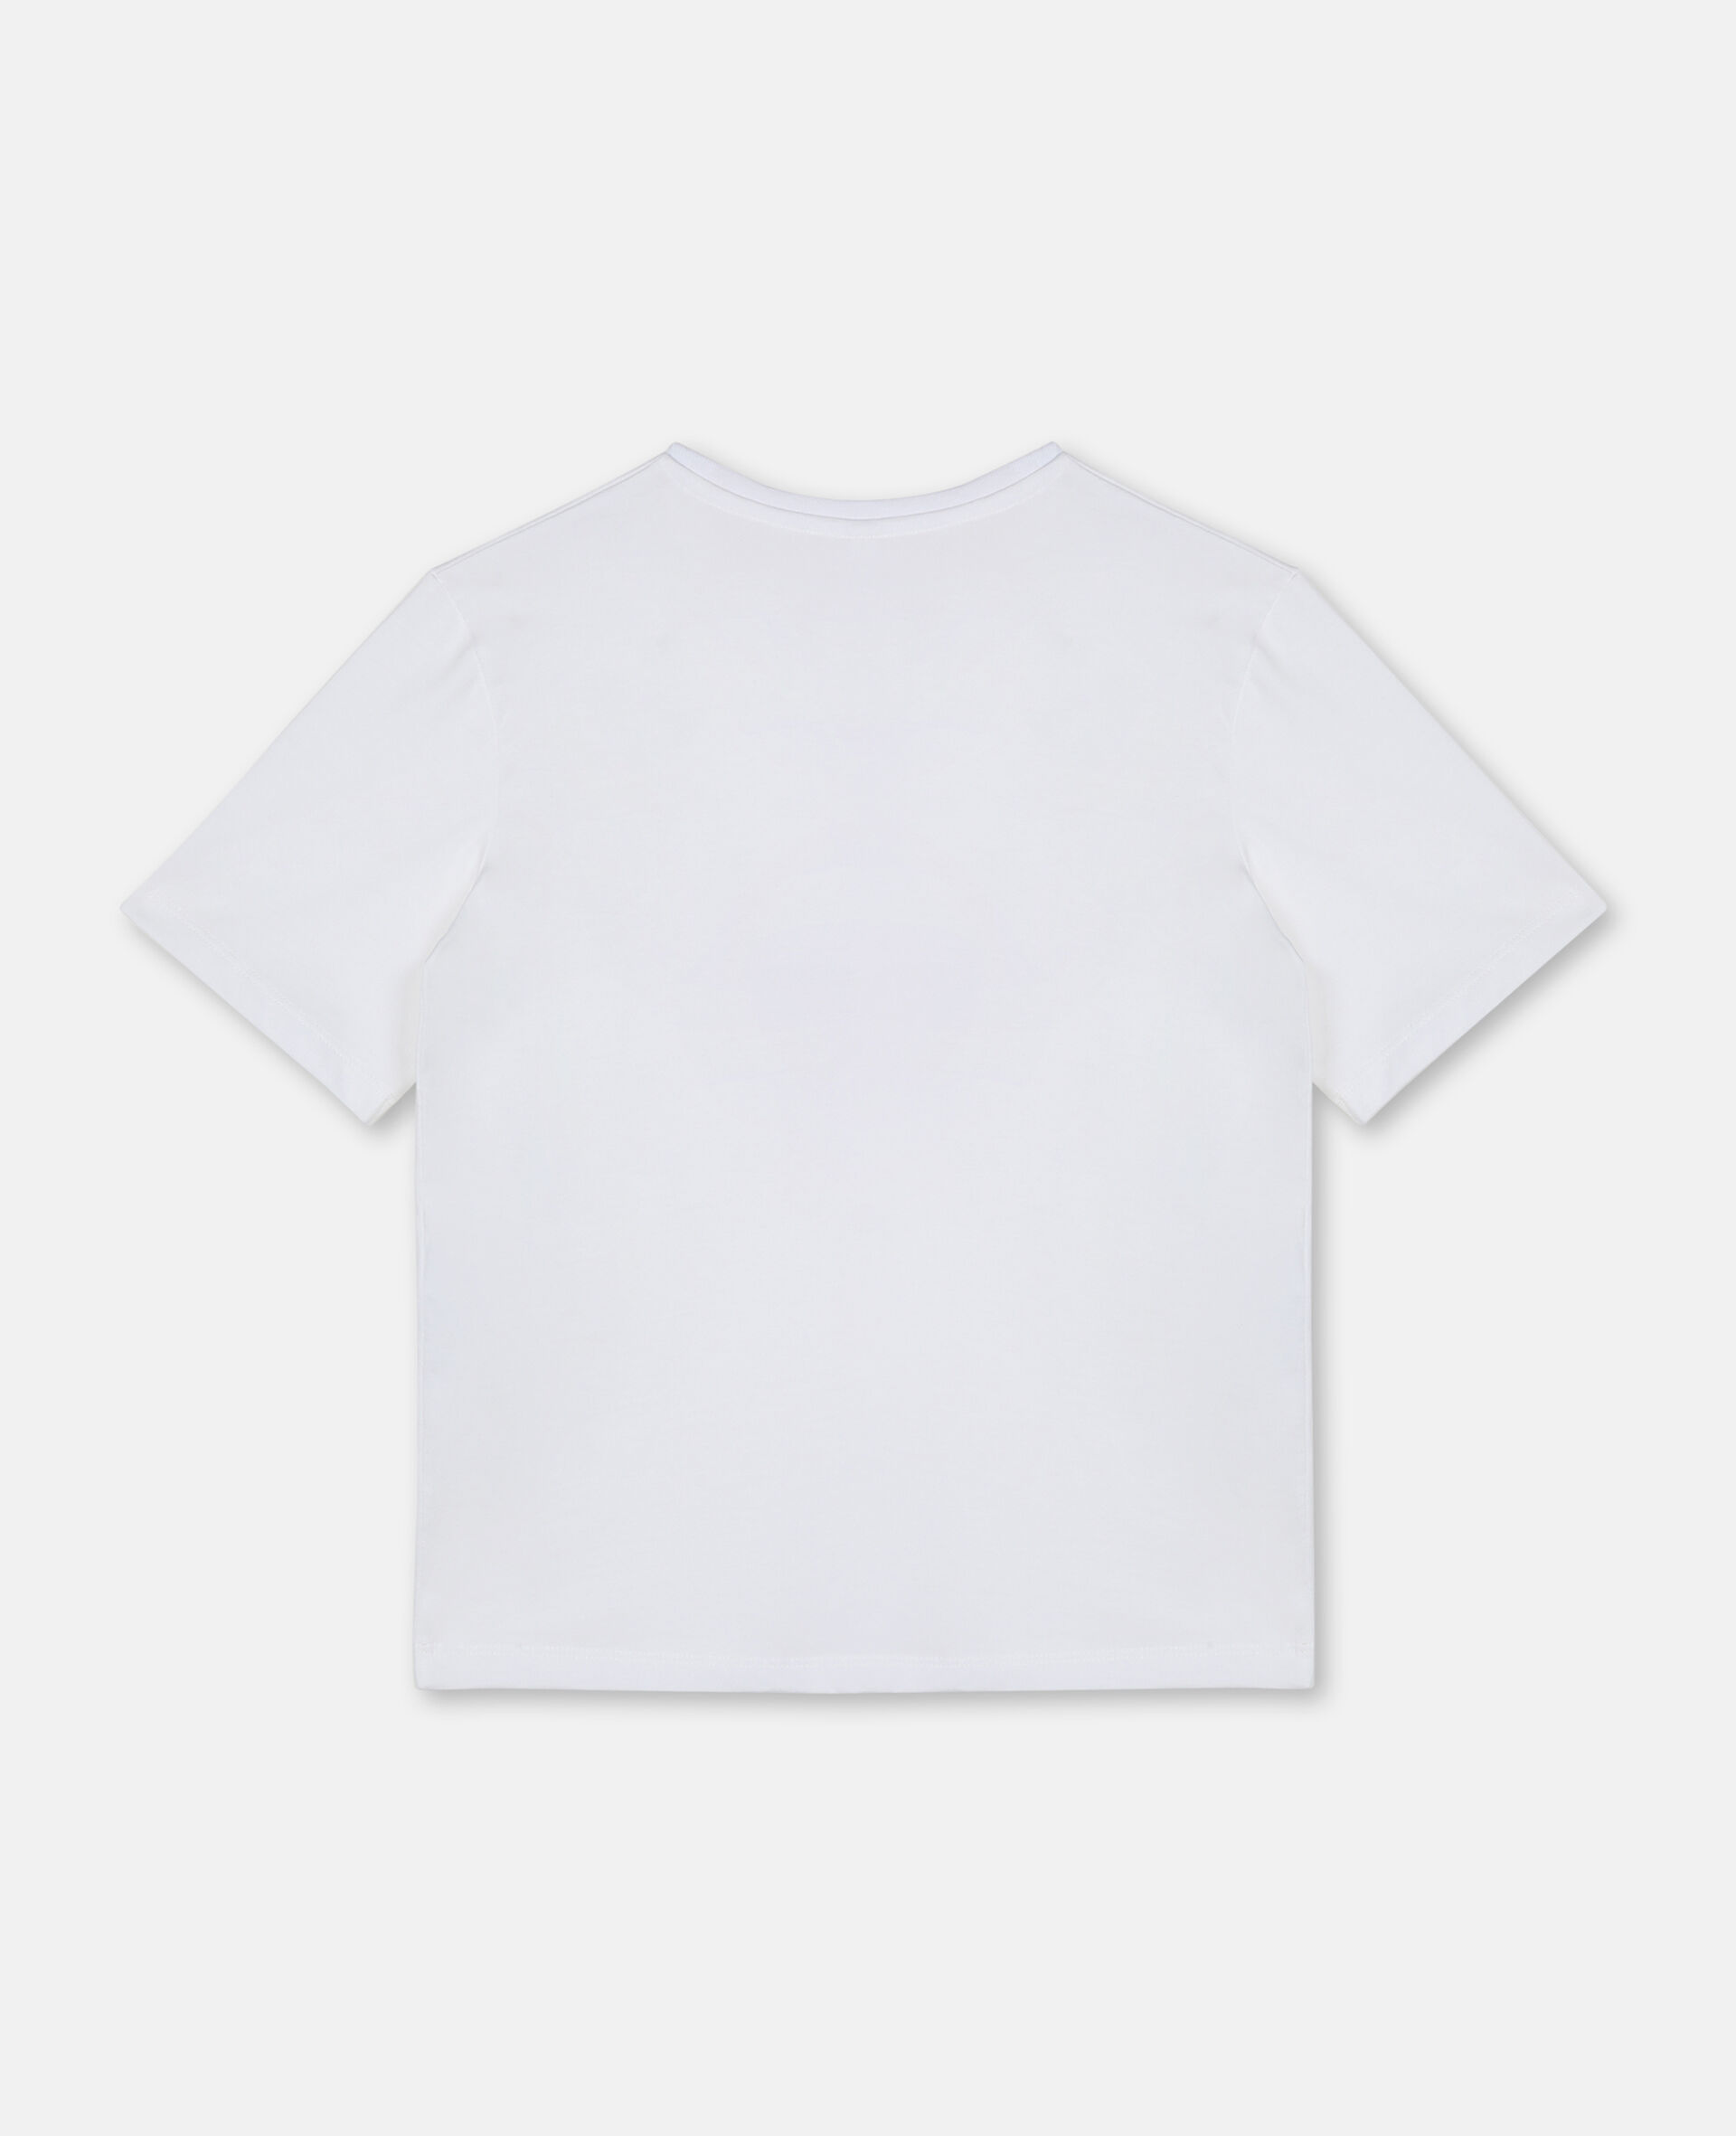 Extra Cool Oversize Cotton T-shirt -White-large image number 3